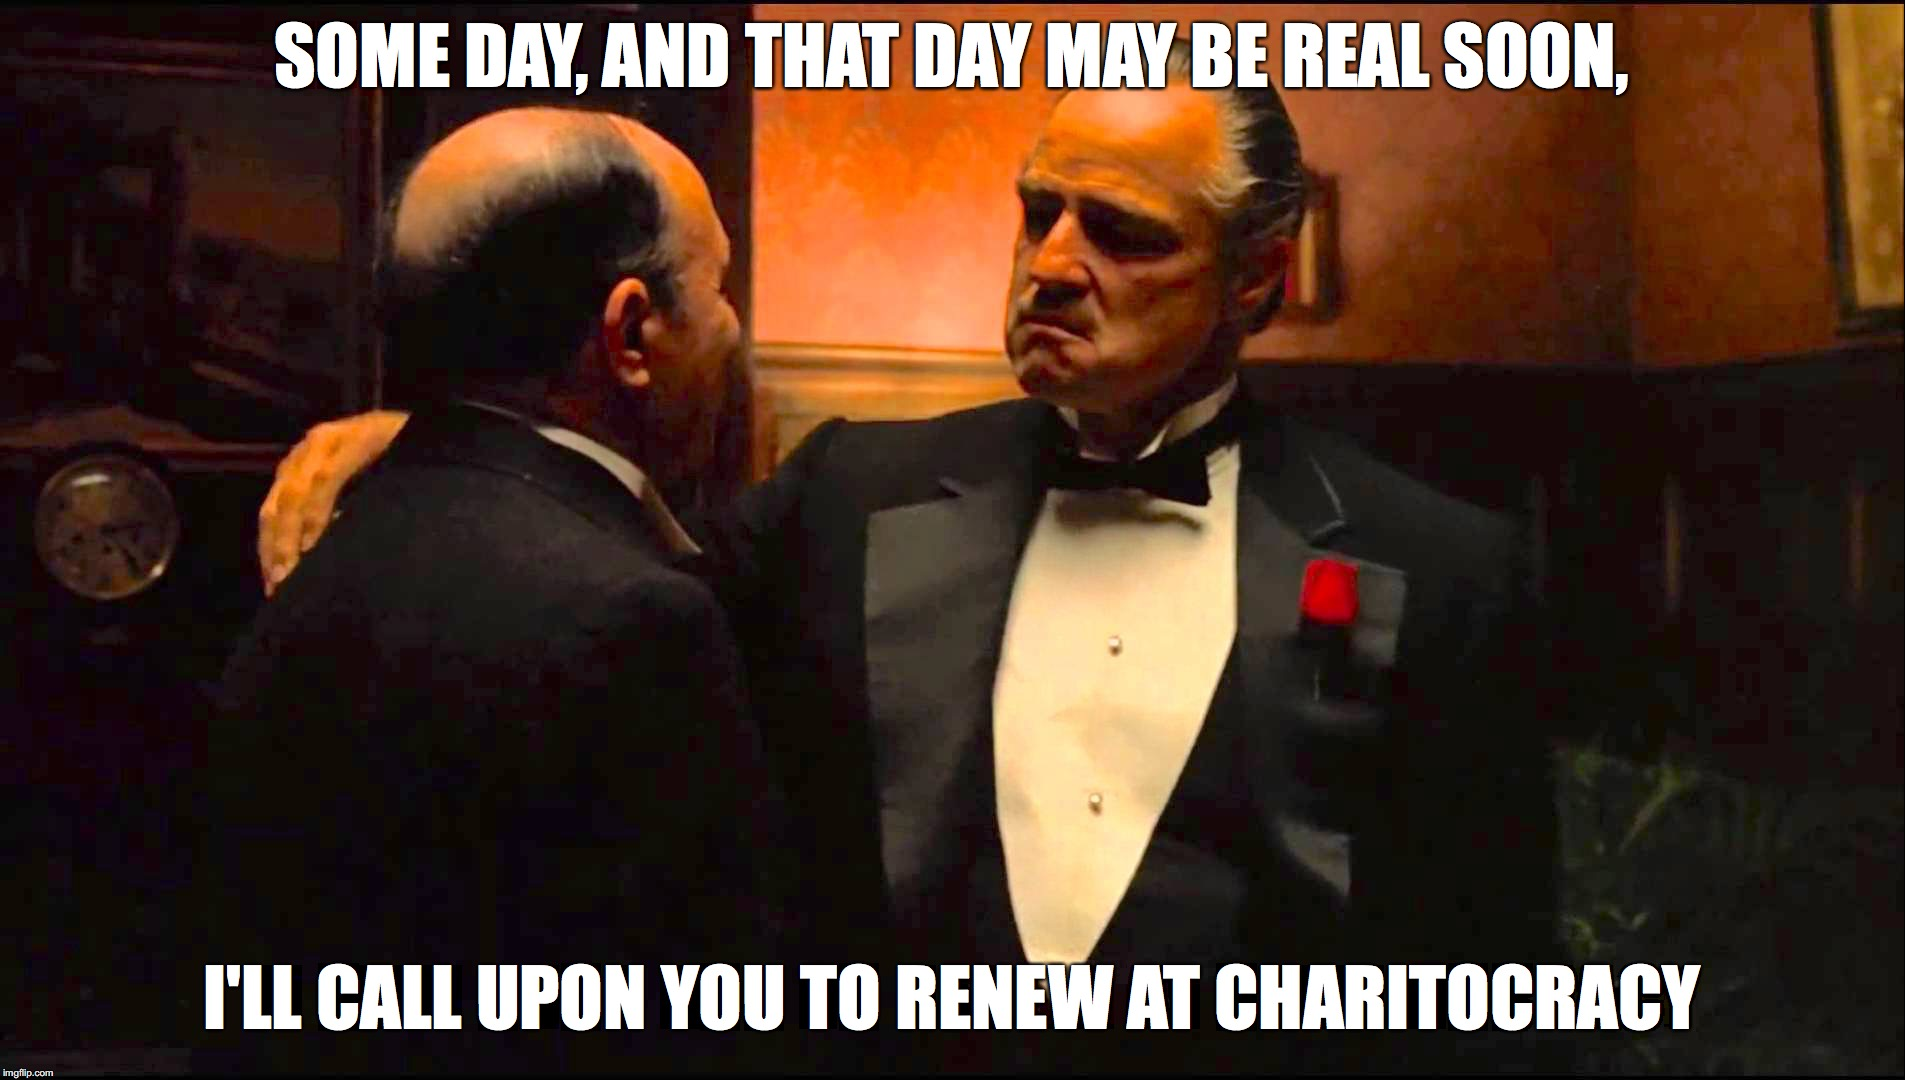 Some day, and that day may be real soon, I'll call upon you to renew at Charitocracy.